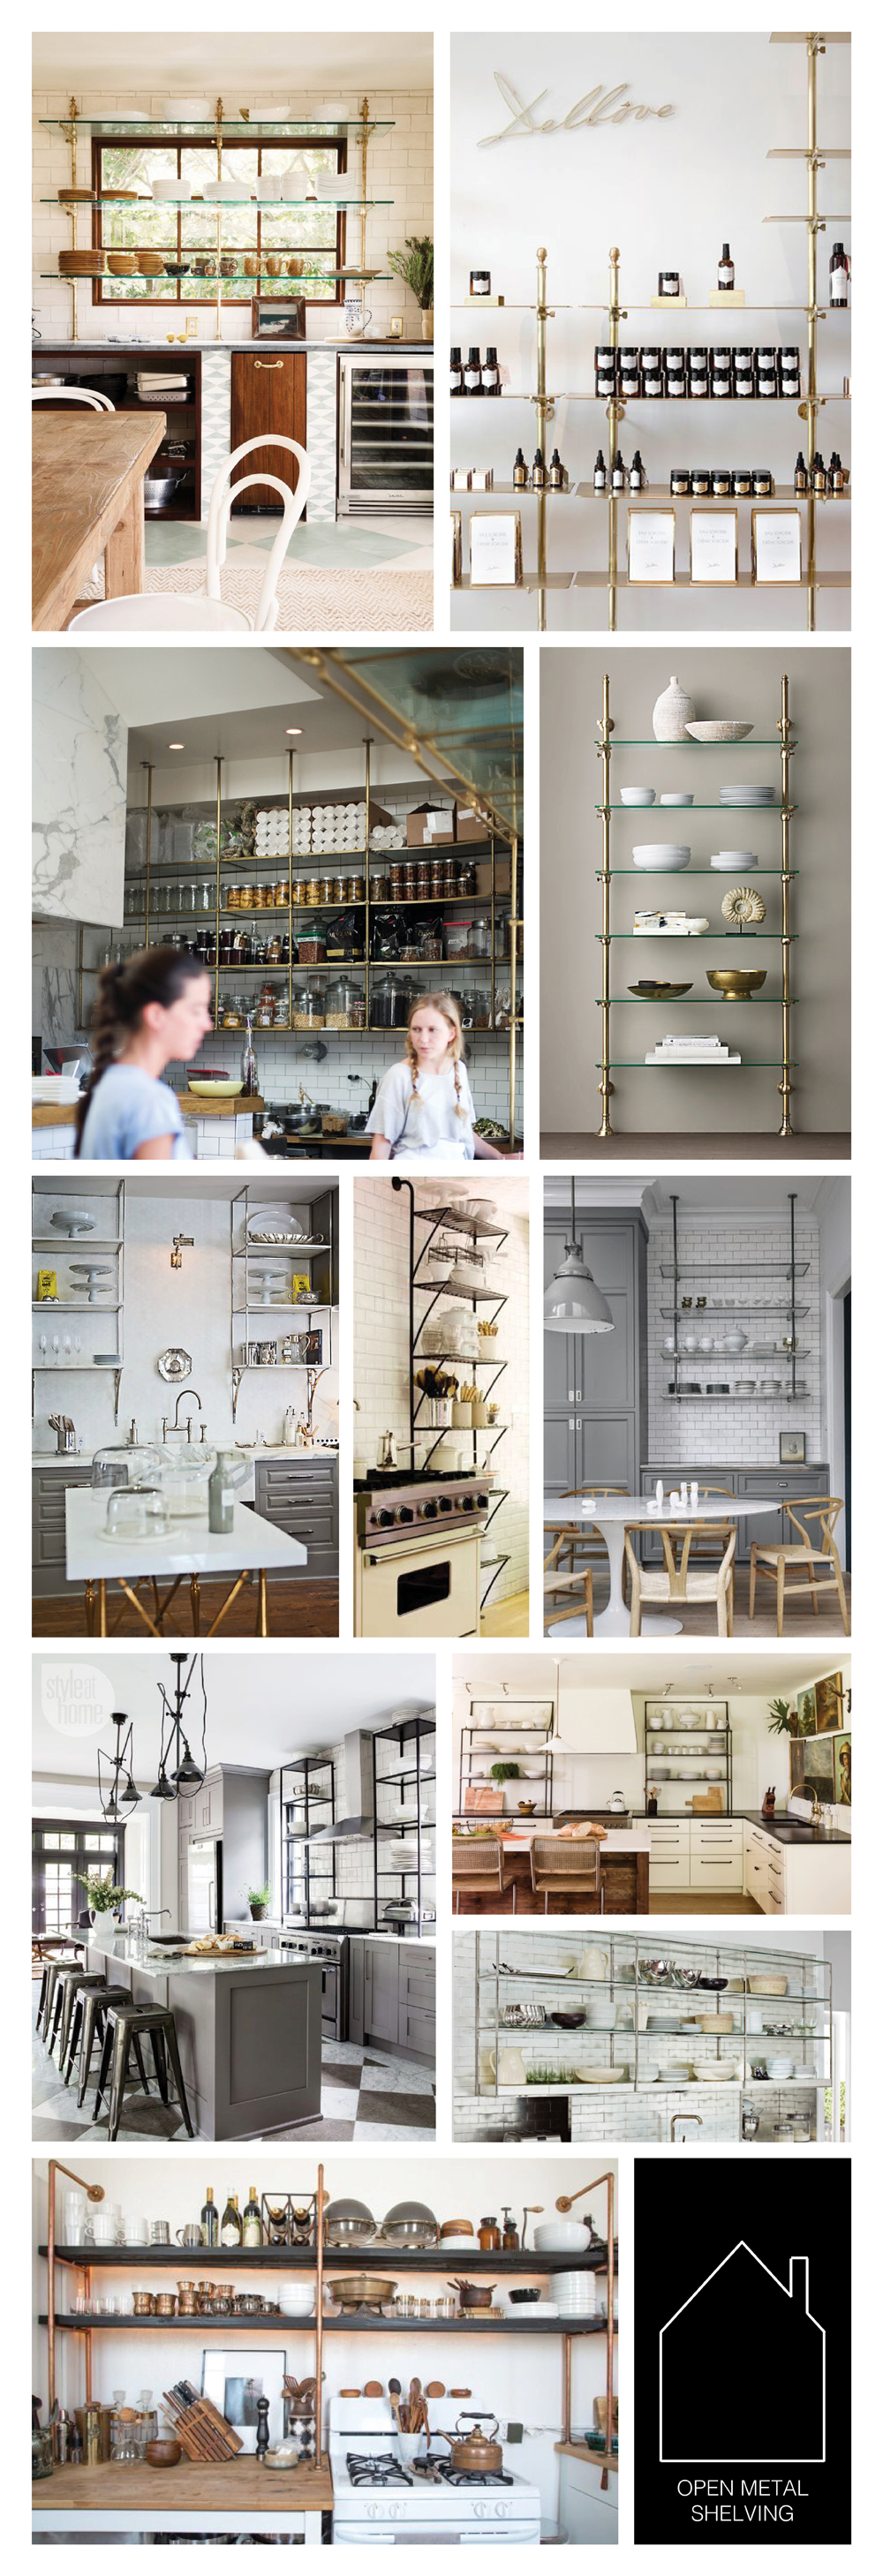 Open Metal Shelving The Place Home